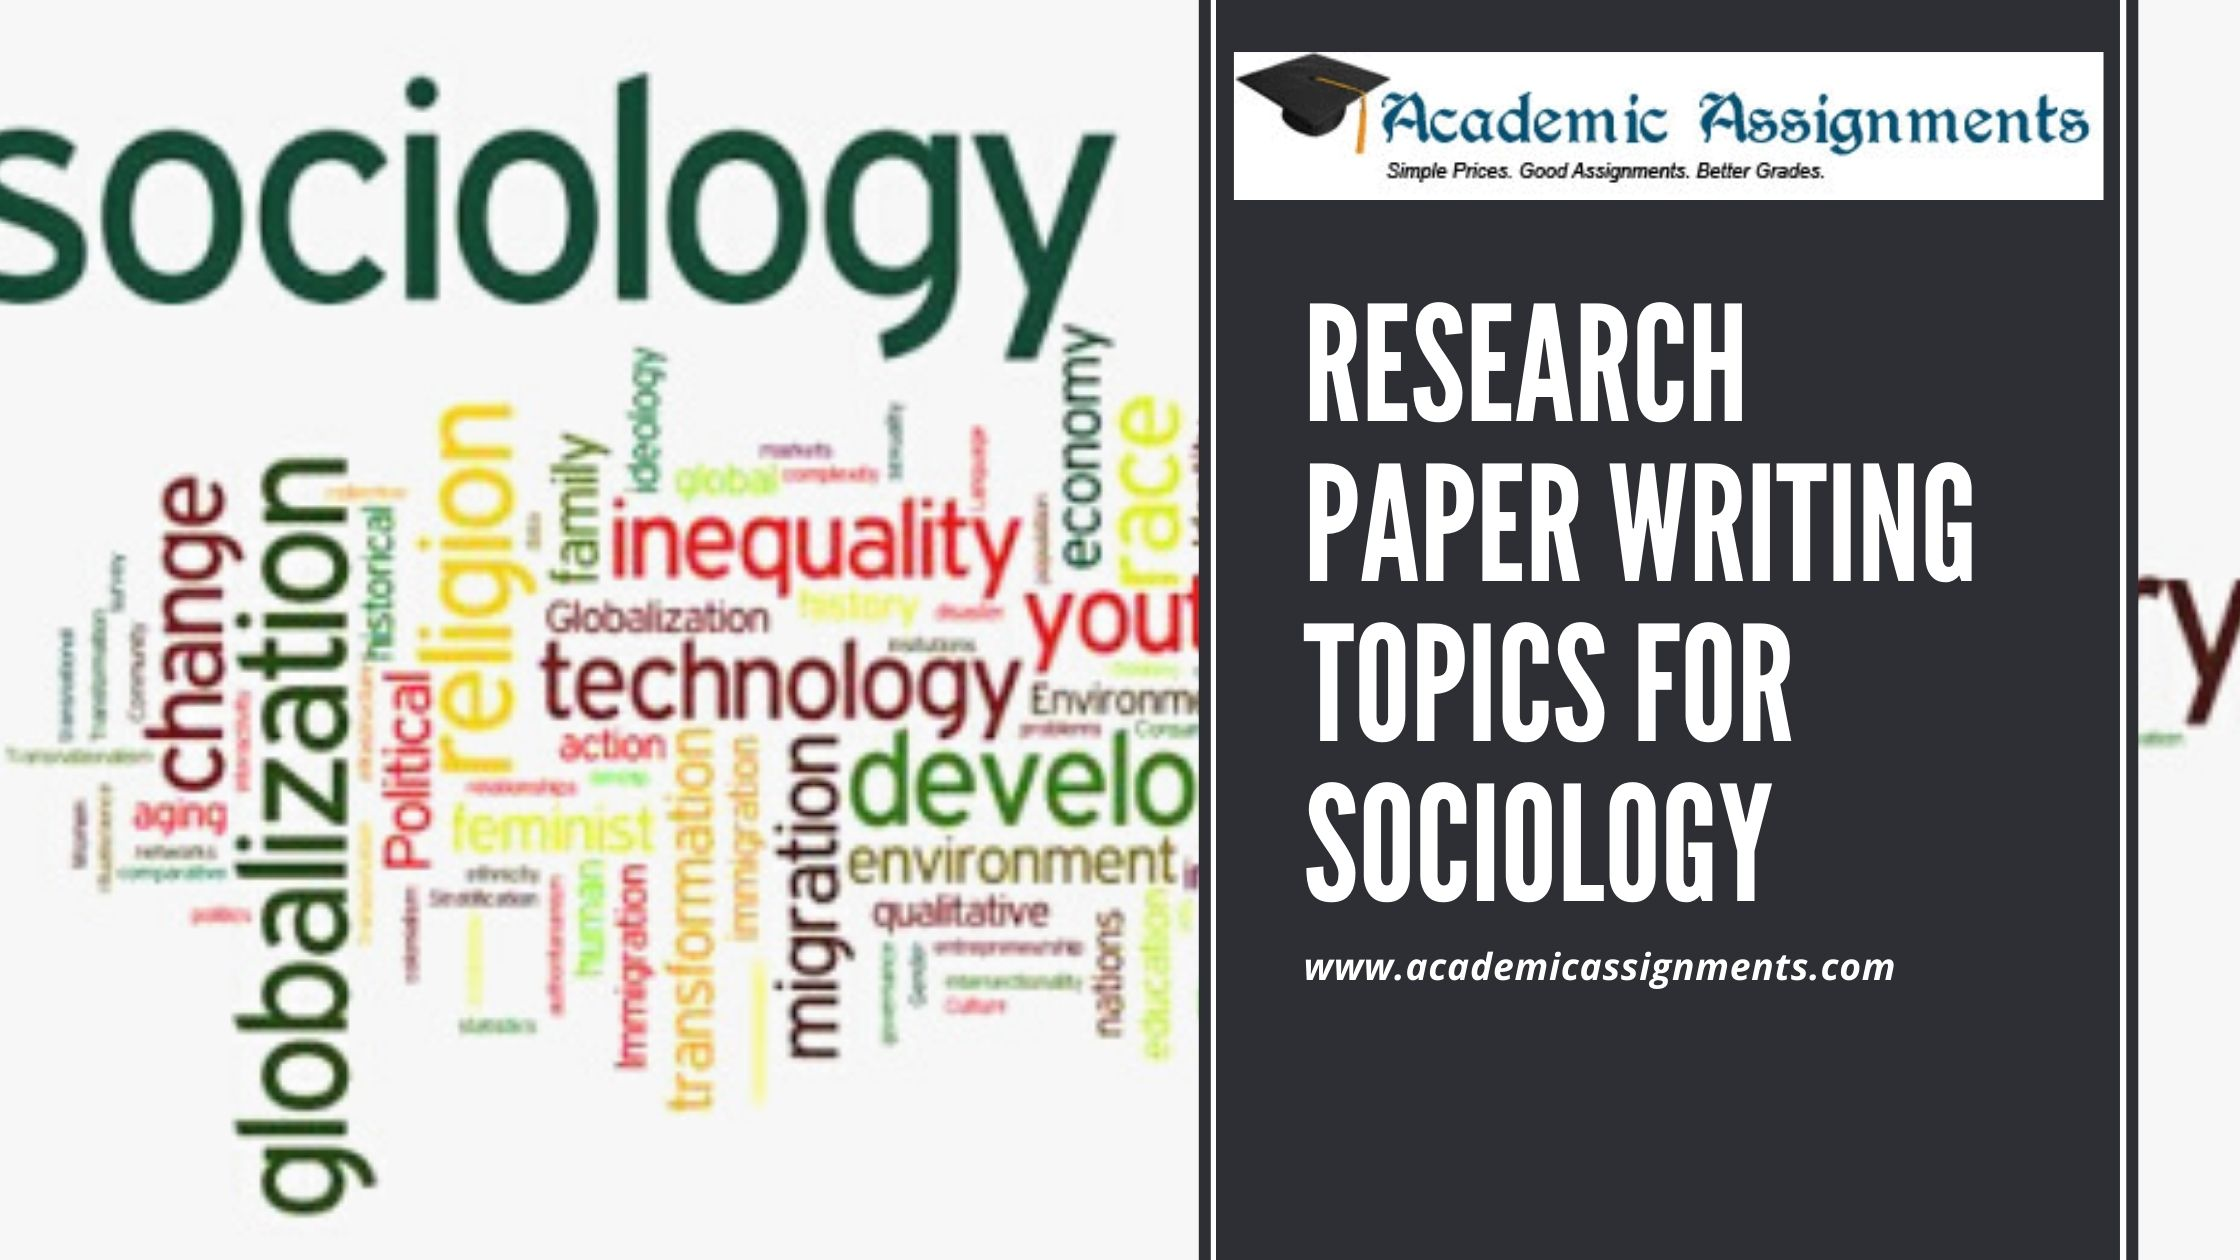 RESEARCH PAPER WRITING TOPICS FOR SOCIOLOGY